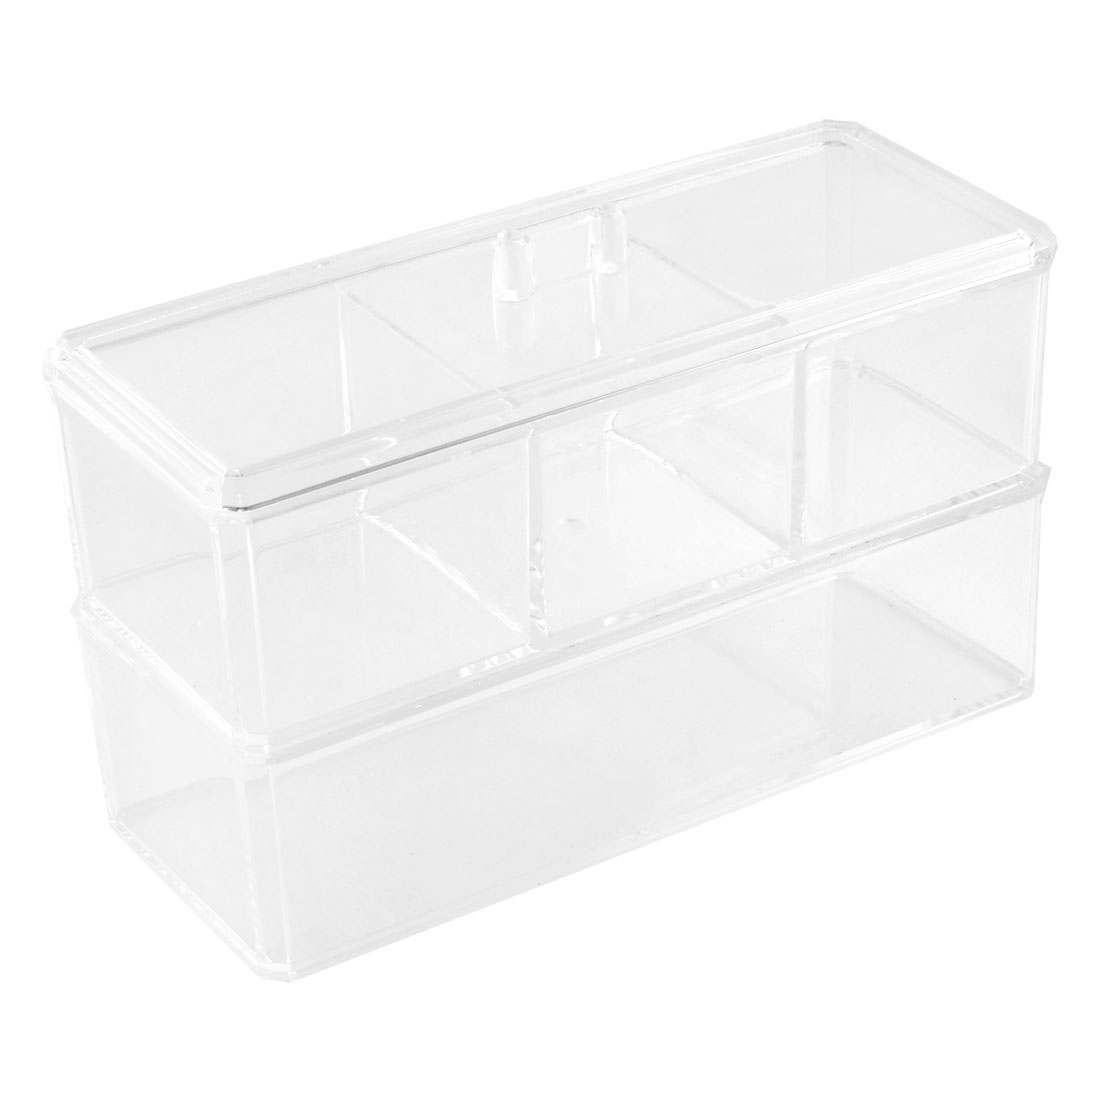 Household Acrylic Double Layers Jewelry Cosmetic Storage Box Case Organizer Clear